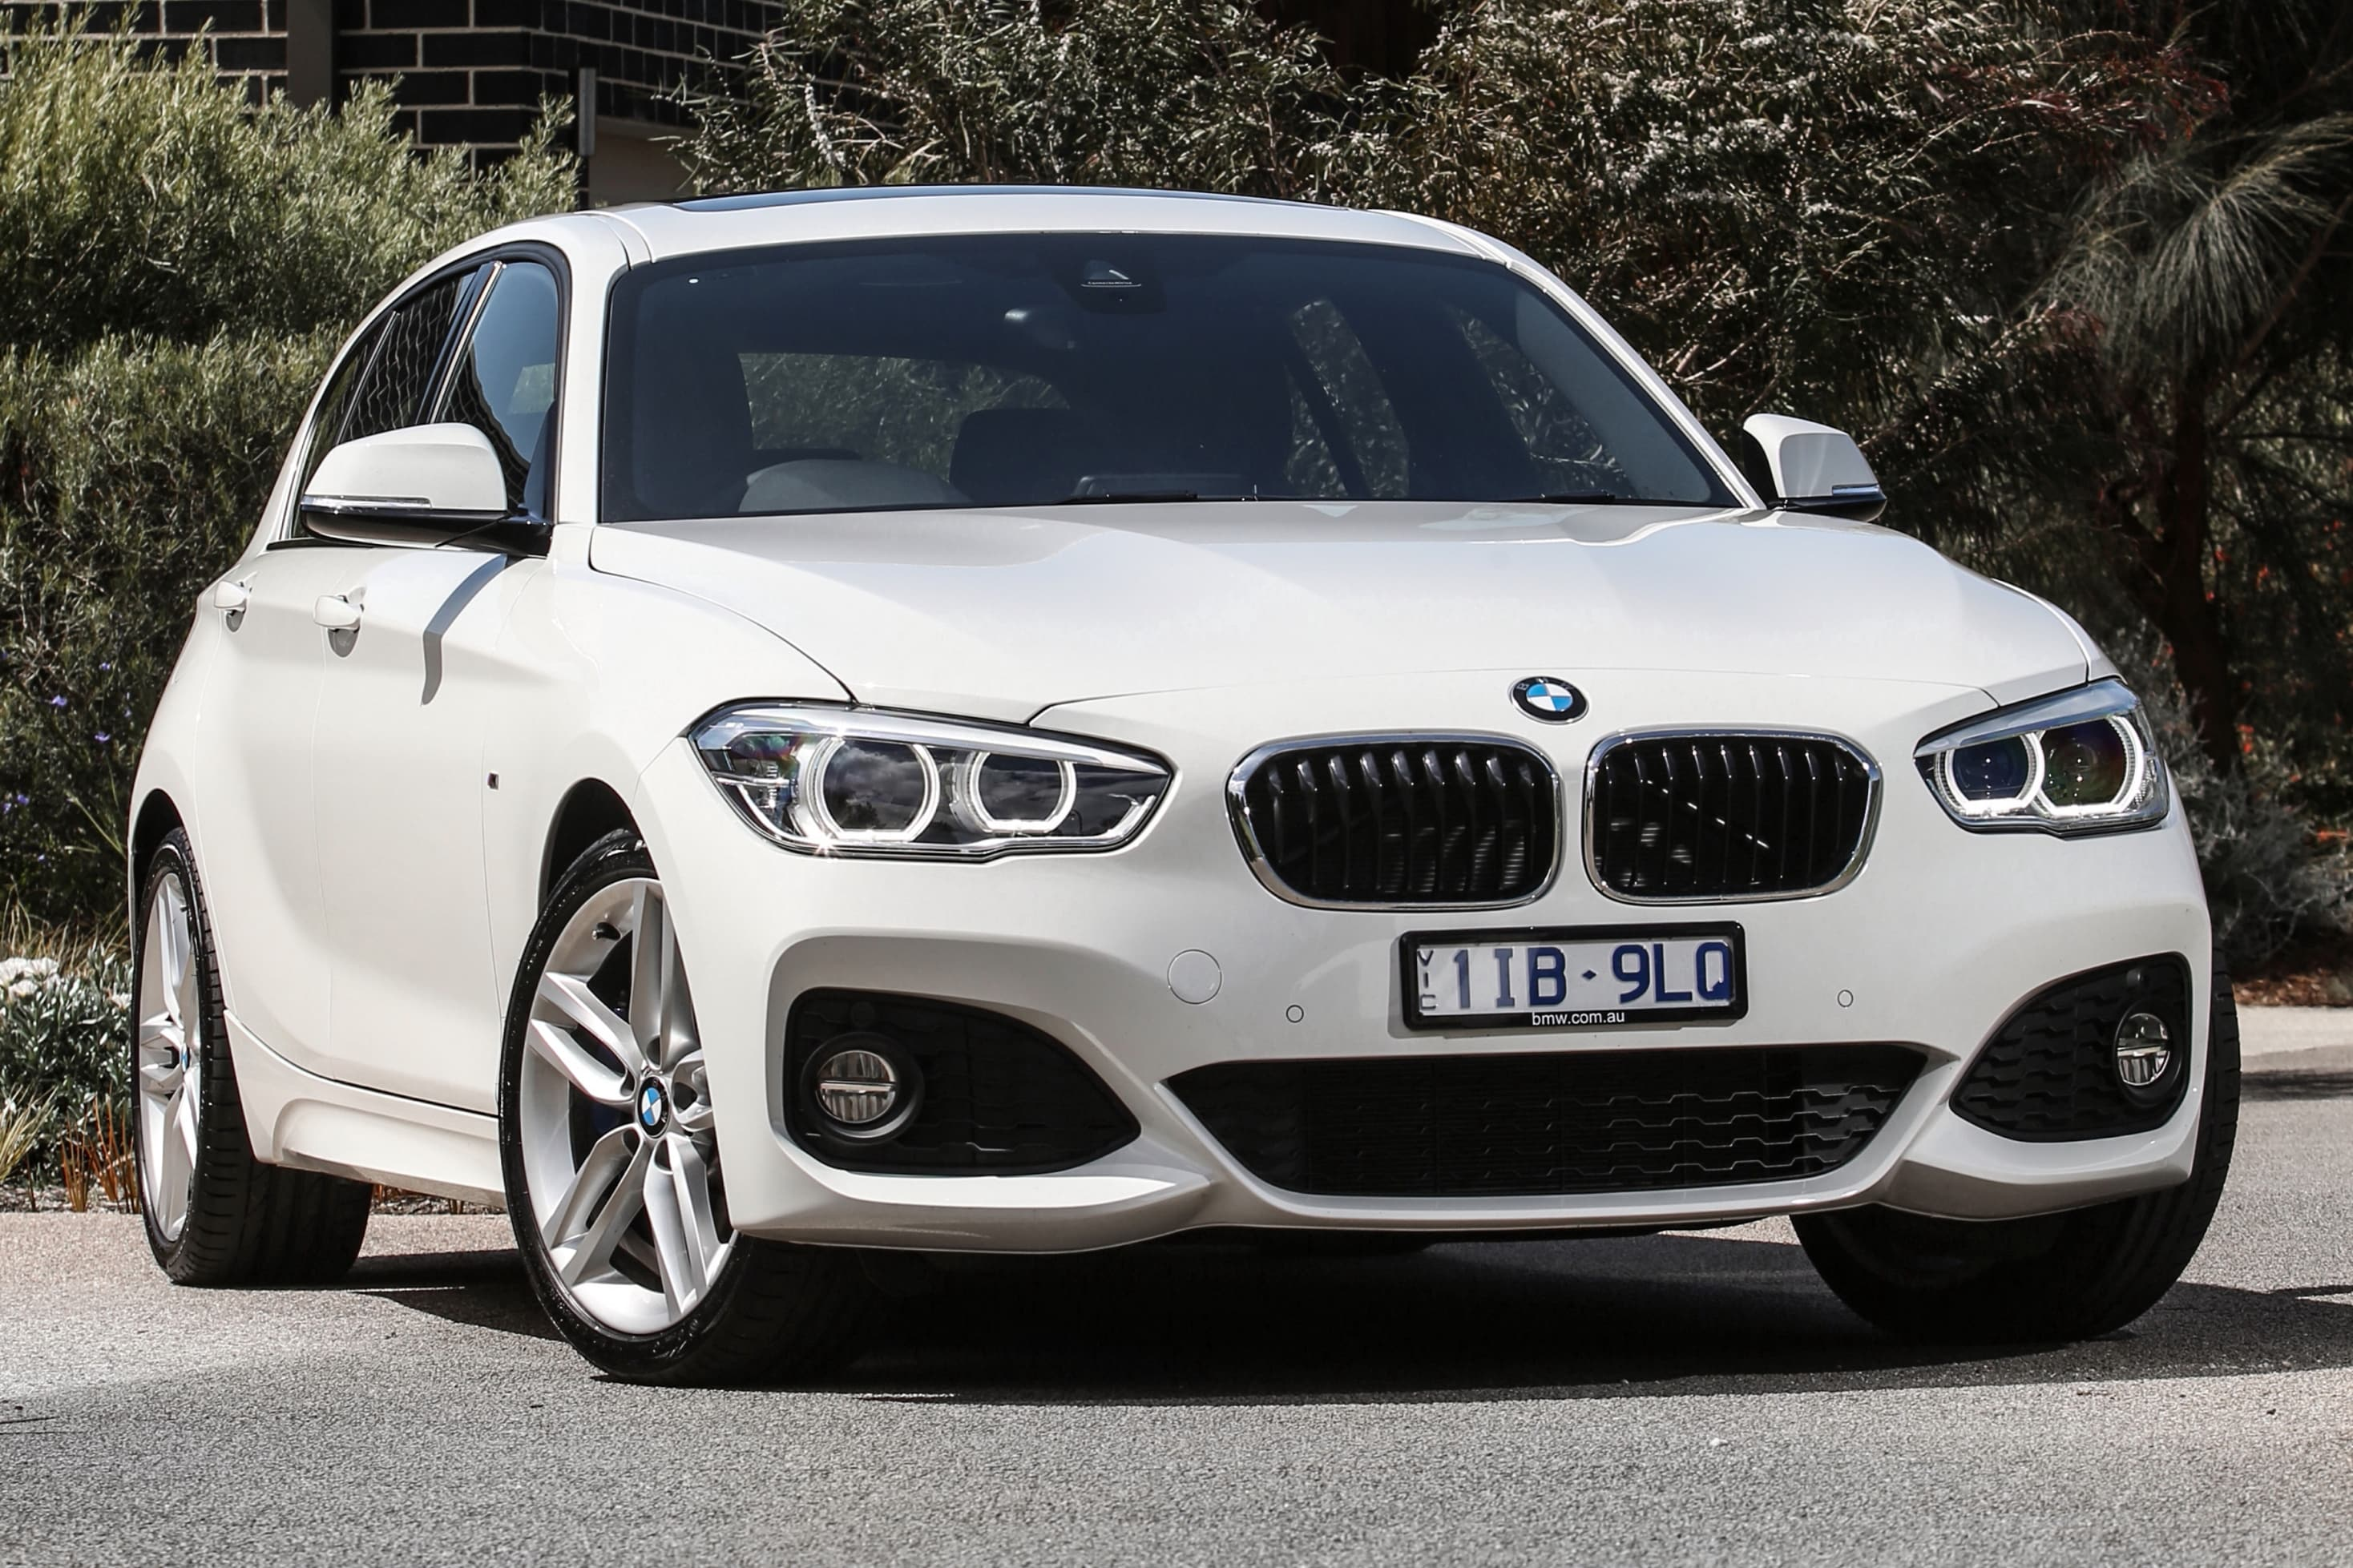 Bmw 118d 2018 Review Snapshot Carsguide